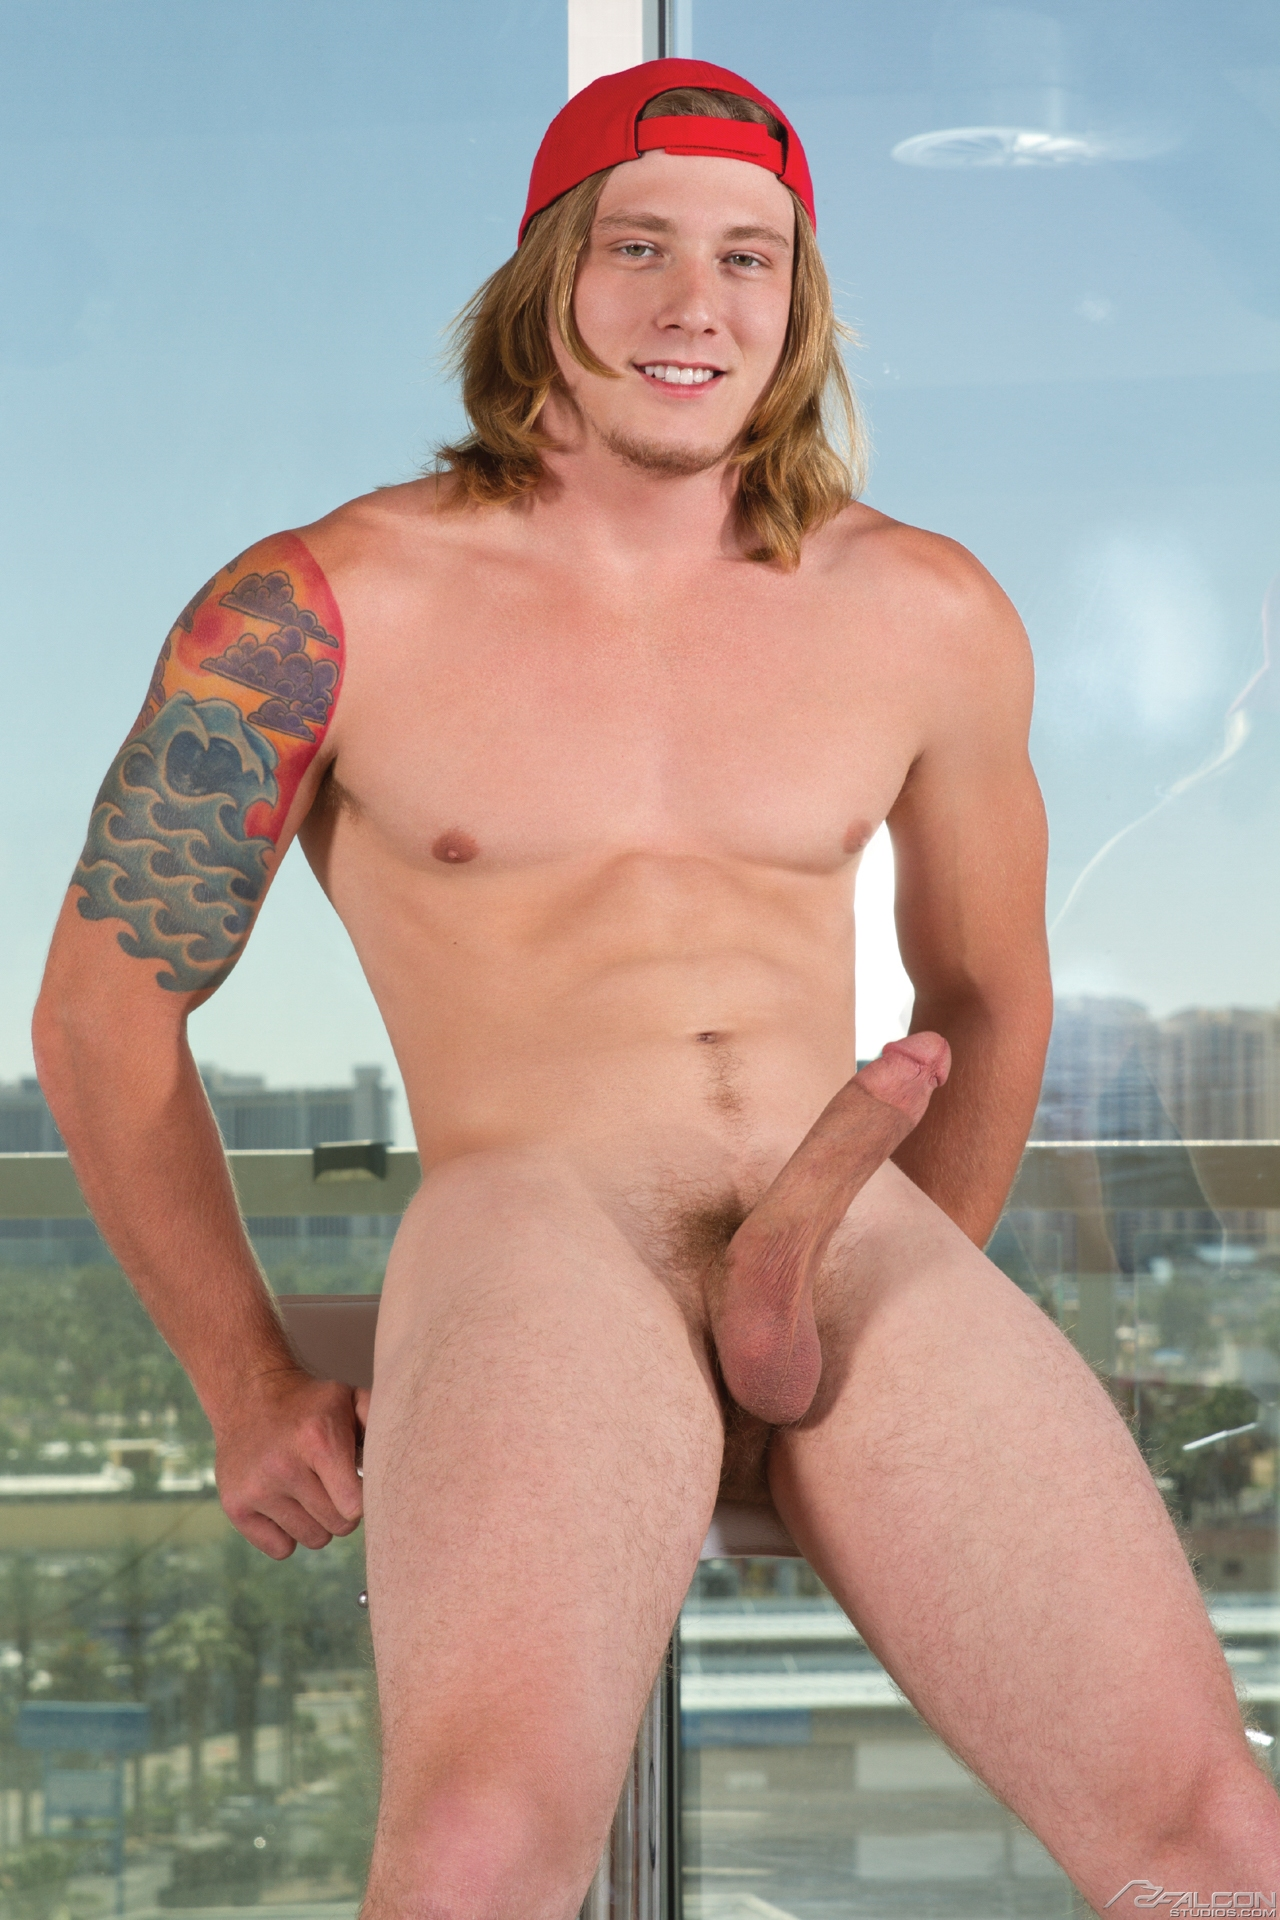 Colt Rivers brings skater-hunk Tom Faulk to the Sex Cushion for a hot fuck. Tom has scruffy facial hair, a shaggy blond mane that cascades to his shoulders plus pubes that match his flowing locks. Tom is completely content in the air charter out Colt drin